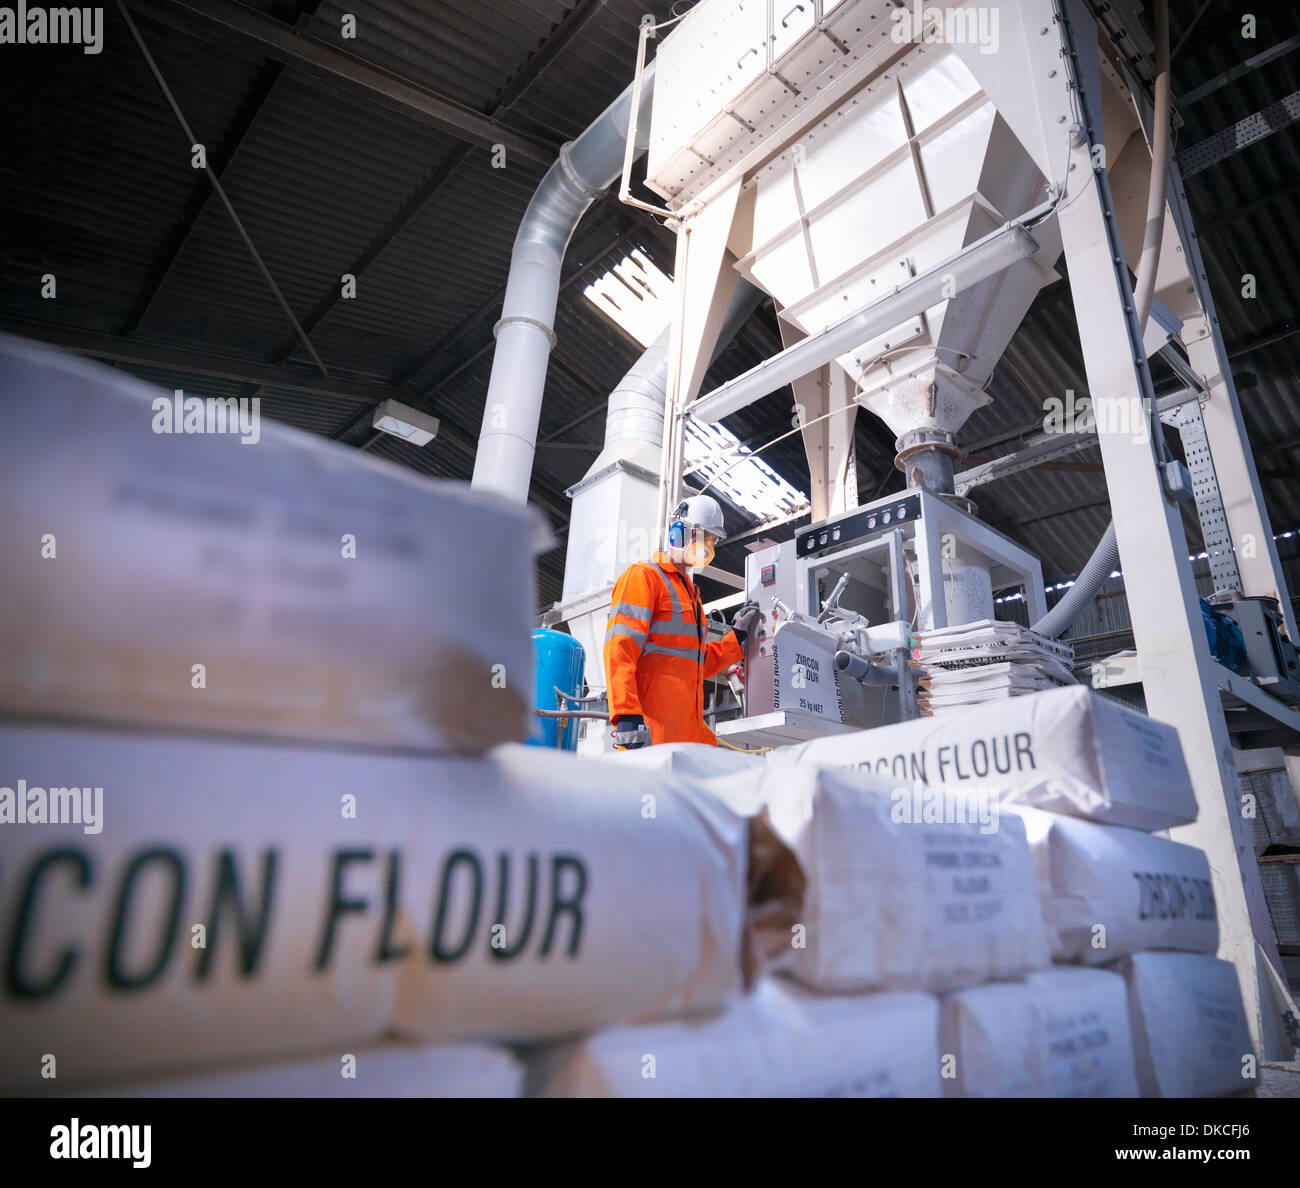 Worker in protective clothing filling zircon flour bags in mill, low angle view - Stock Image